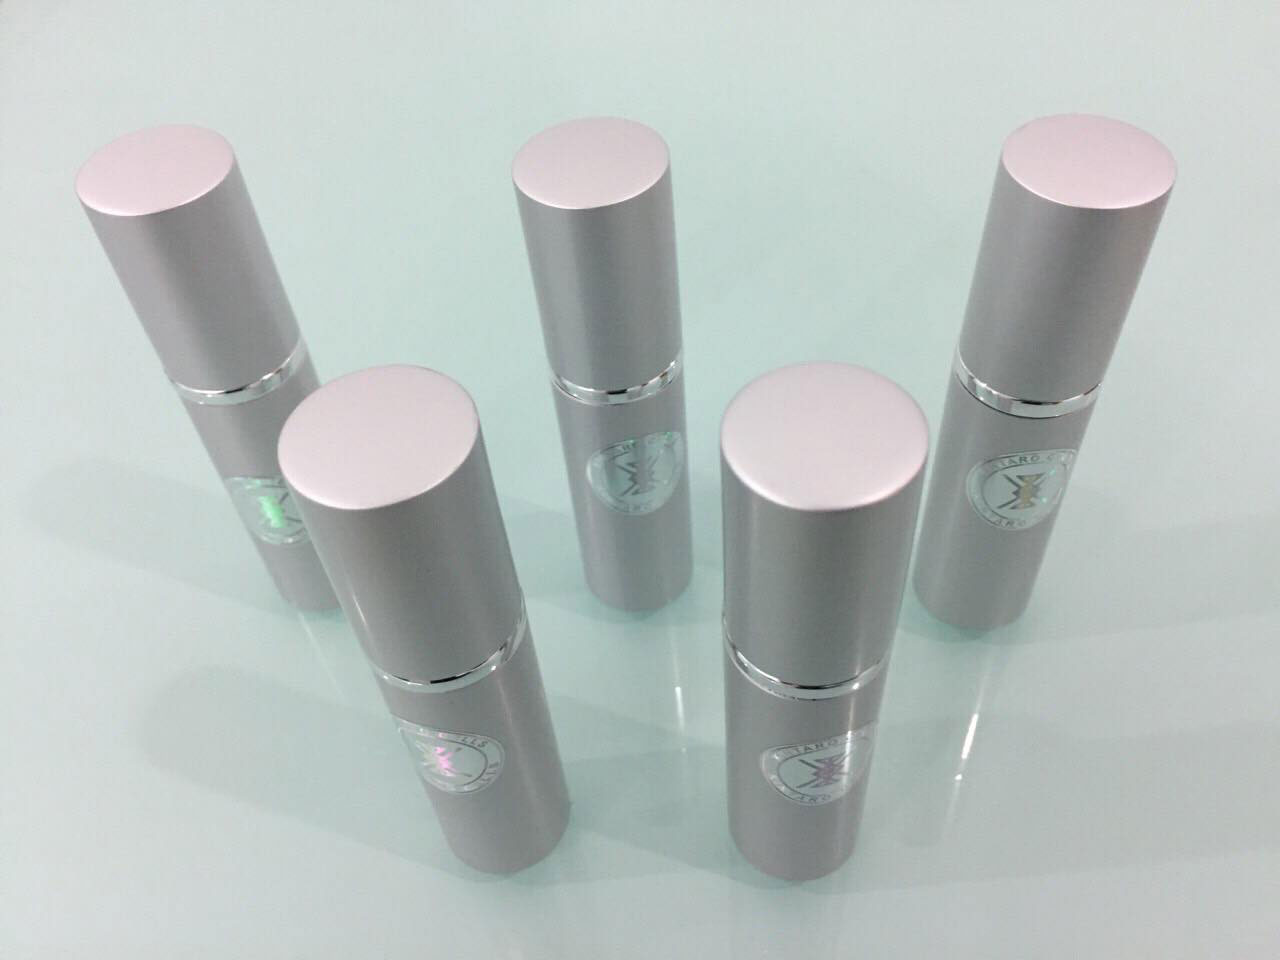 The unique biocosmetic product eKEM is an enrichment medium for cosmetics